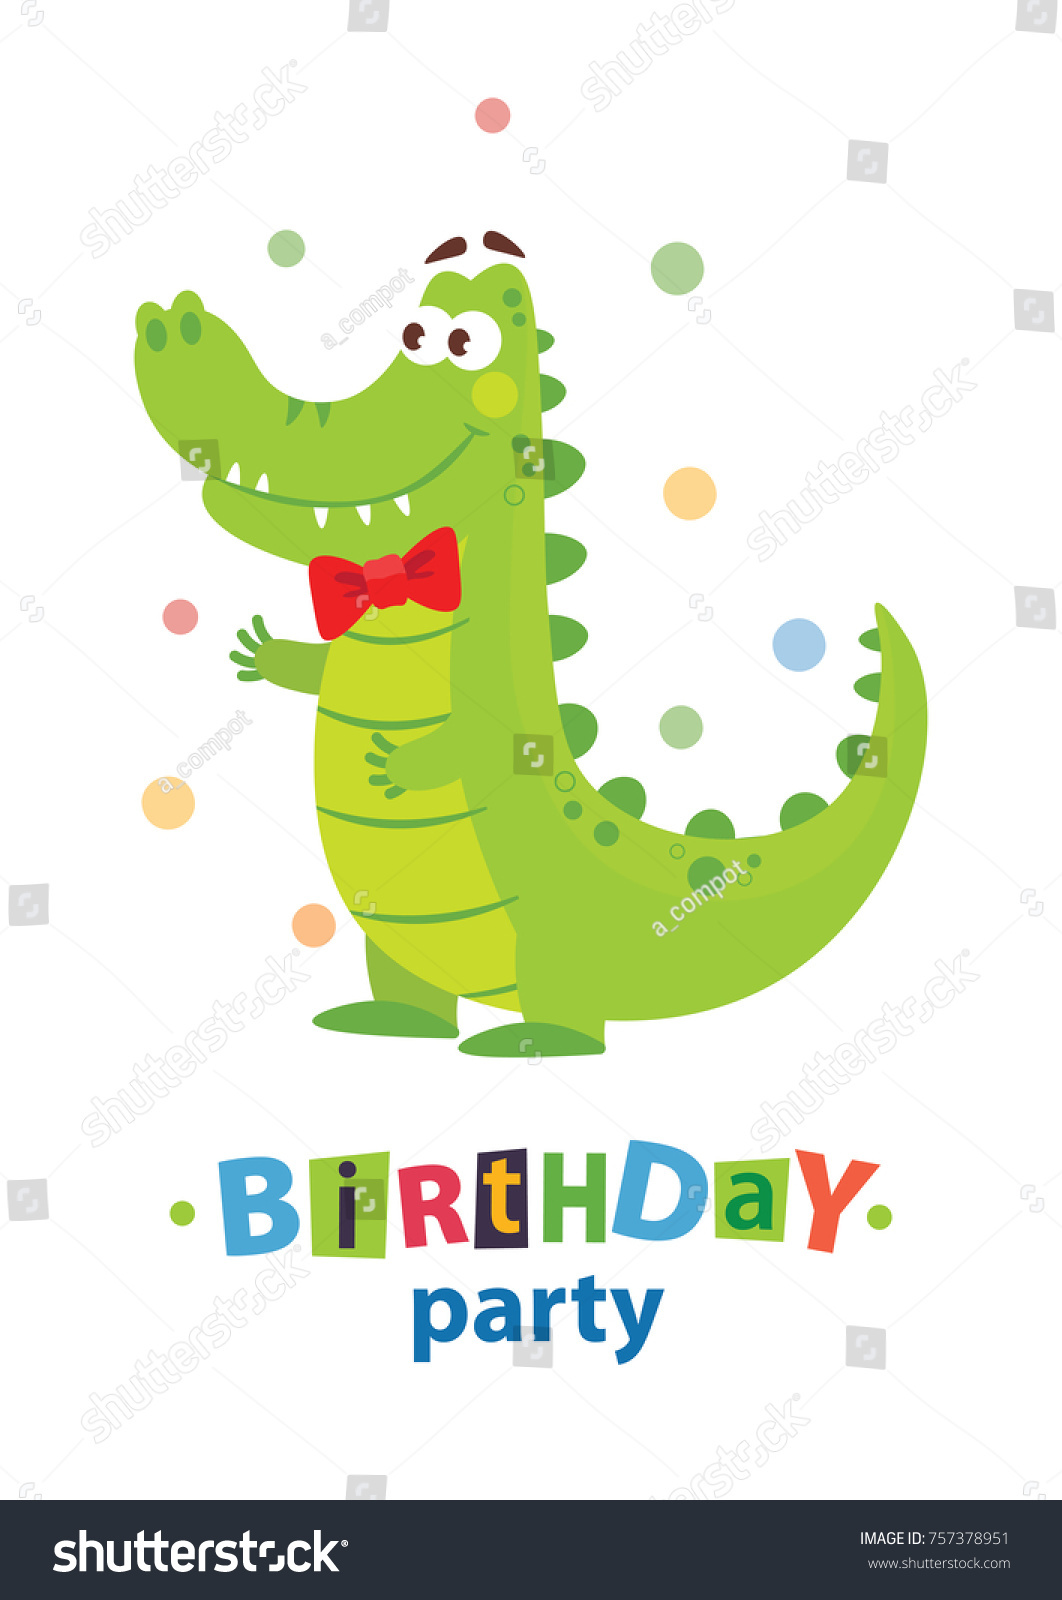 Kids birthday invitation card cute cartoon stock vector 757378951 kids birthday invitation card cute cartoon stock vector 757378951 shutterstock stopboris Images